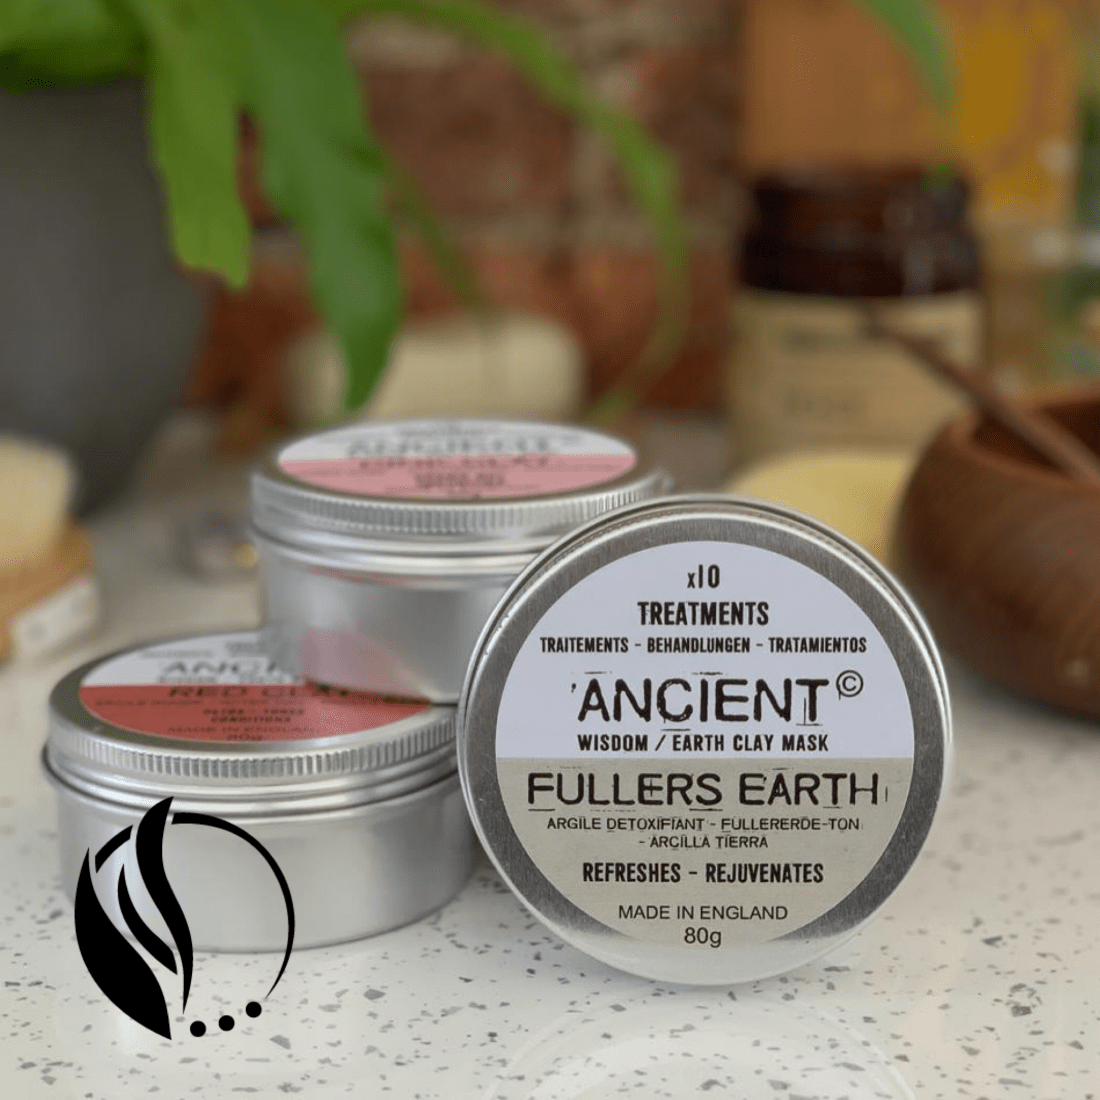 fuller earth mud clay mask